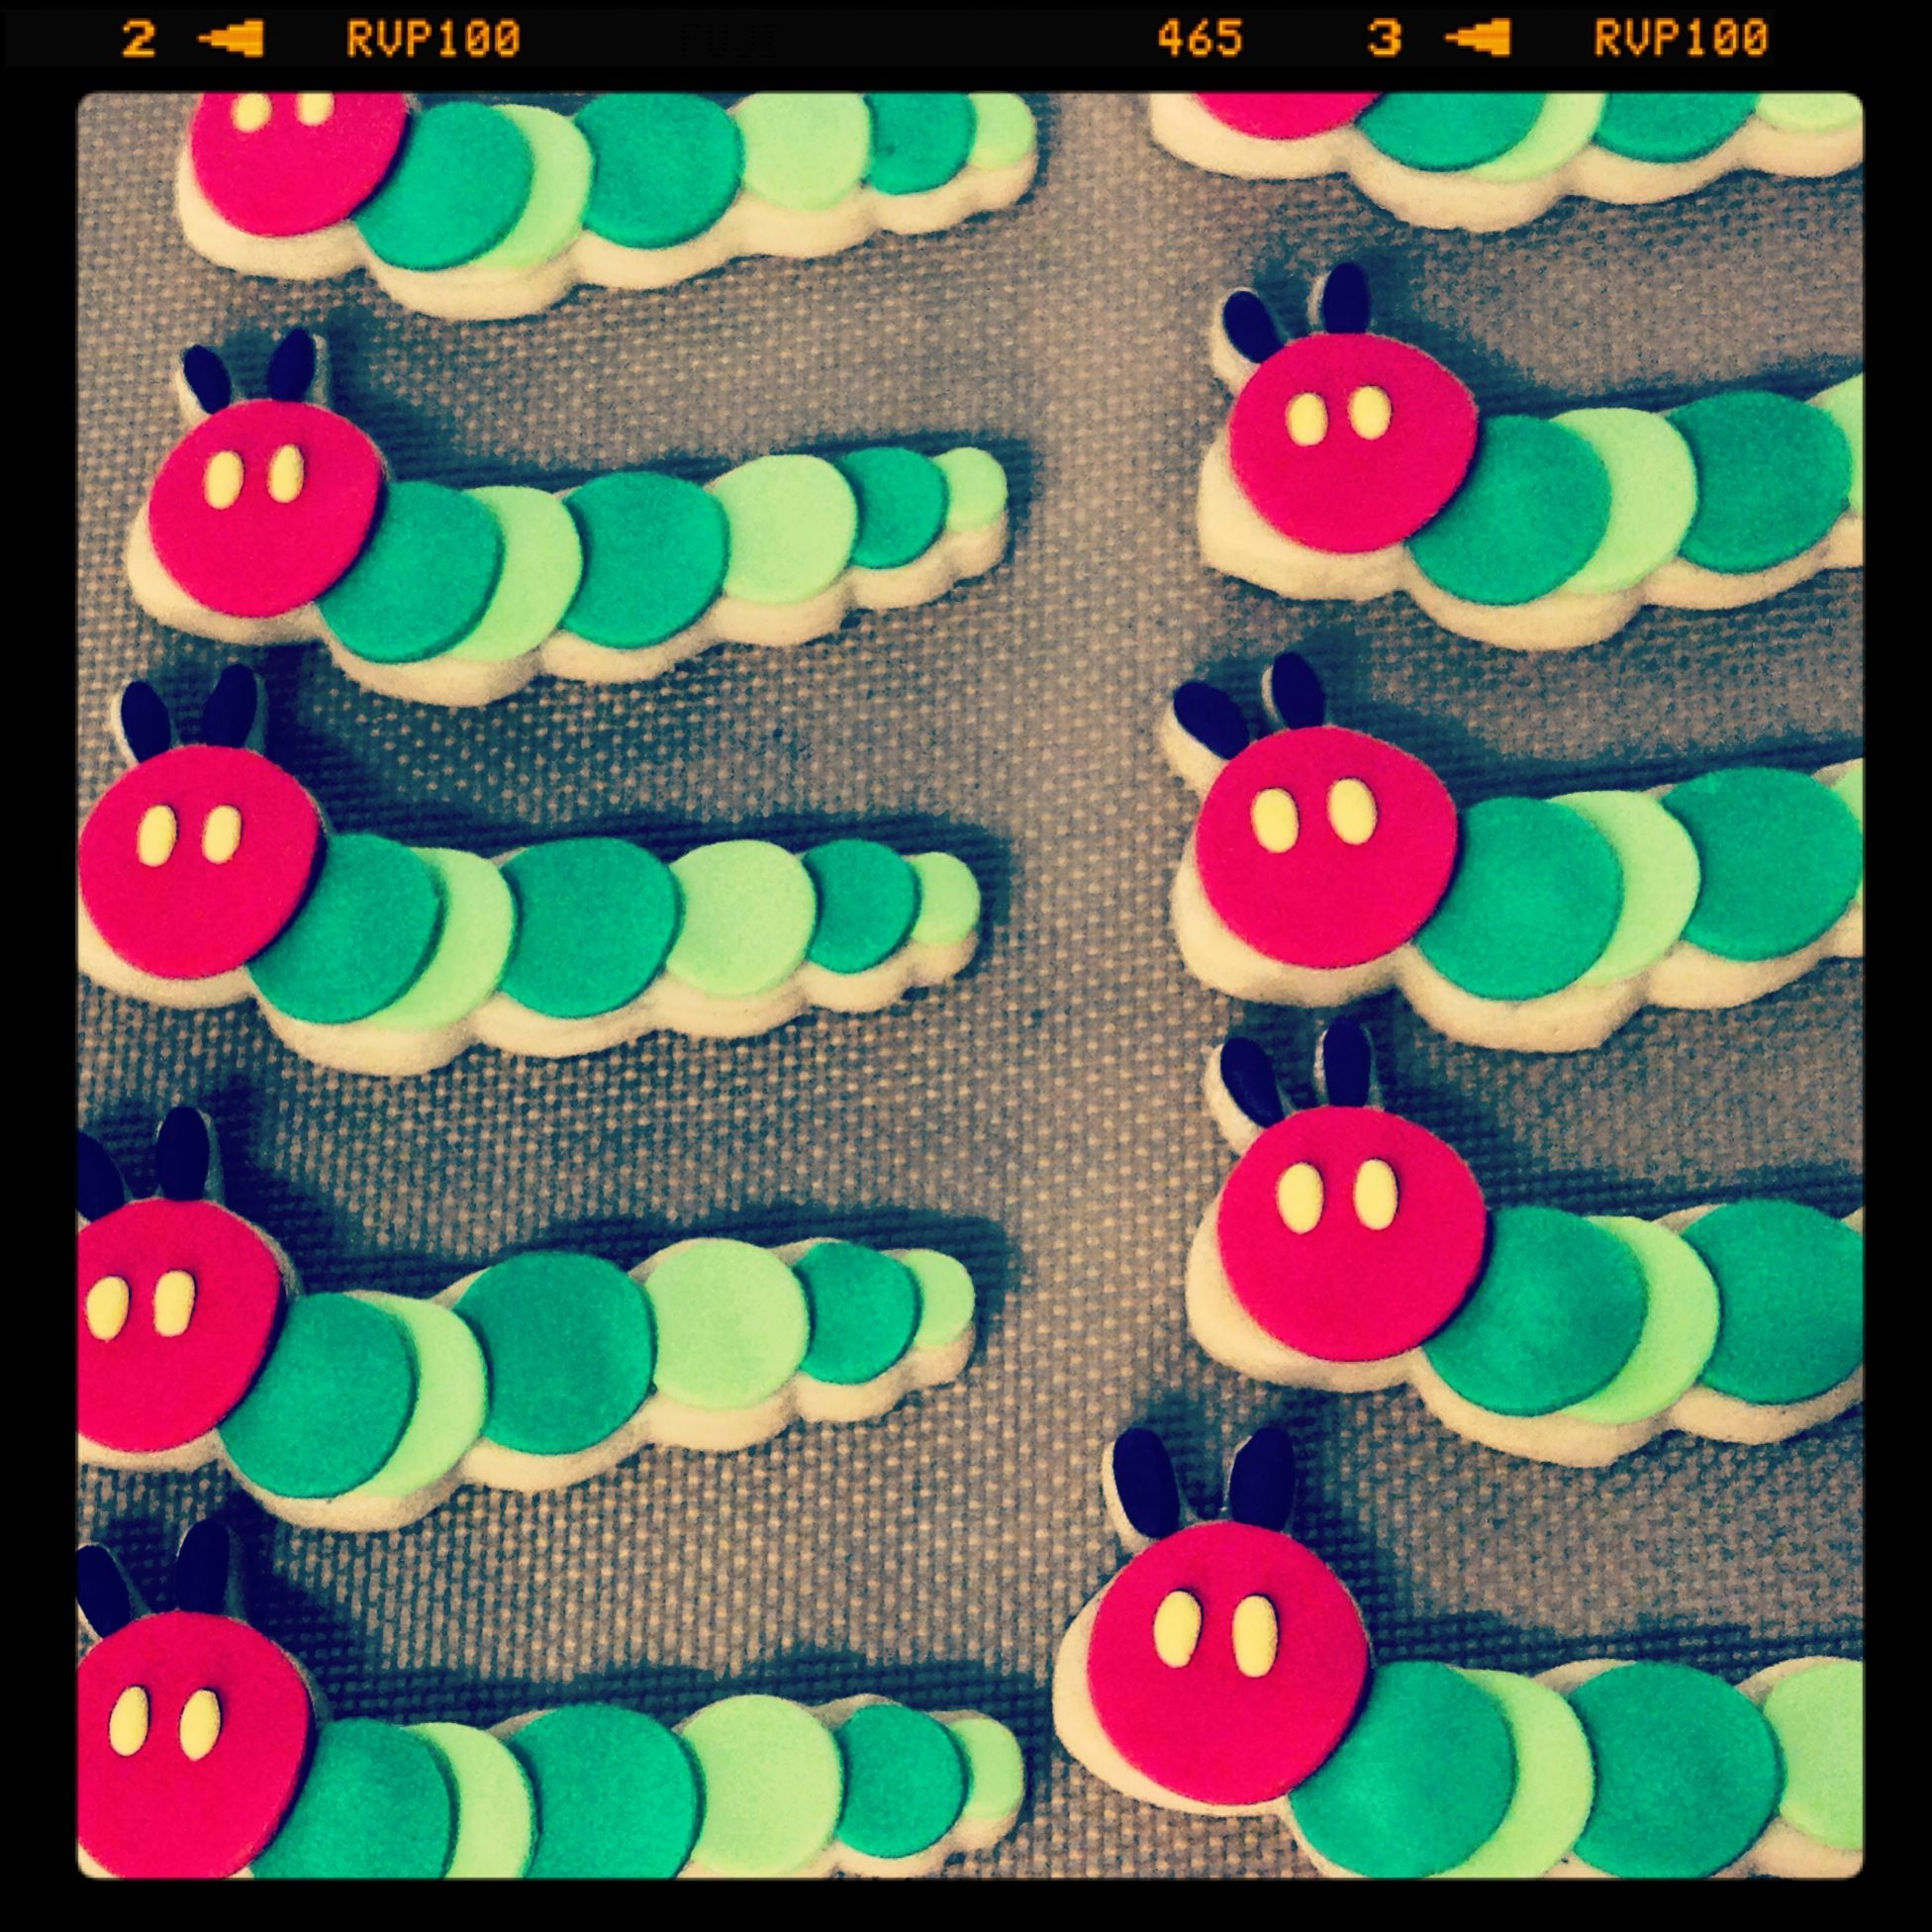 Hungry caterpillars by BYT